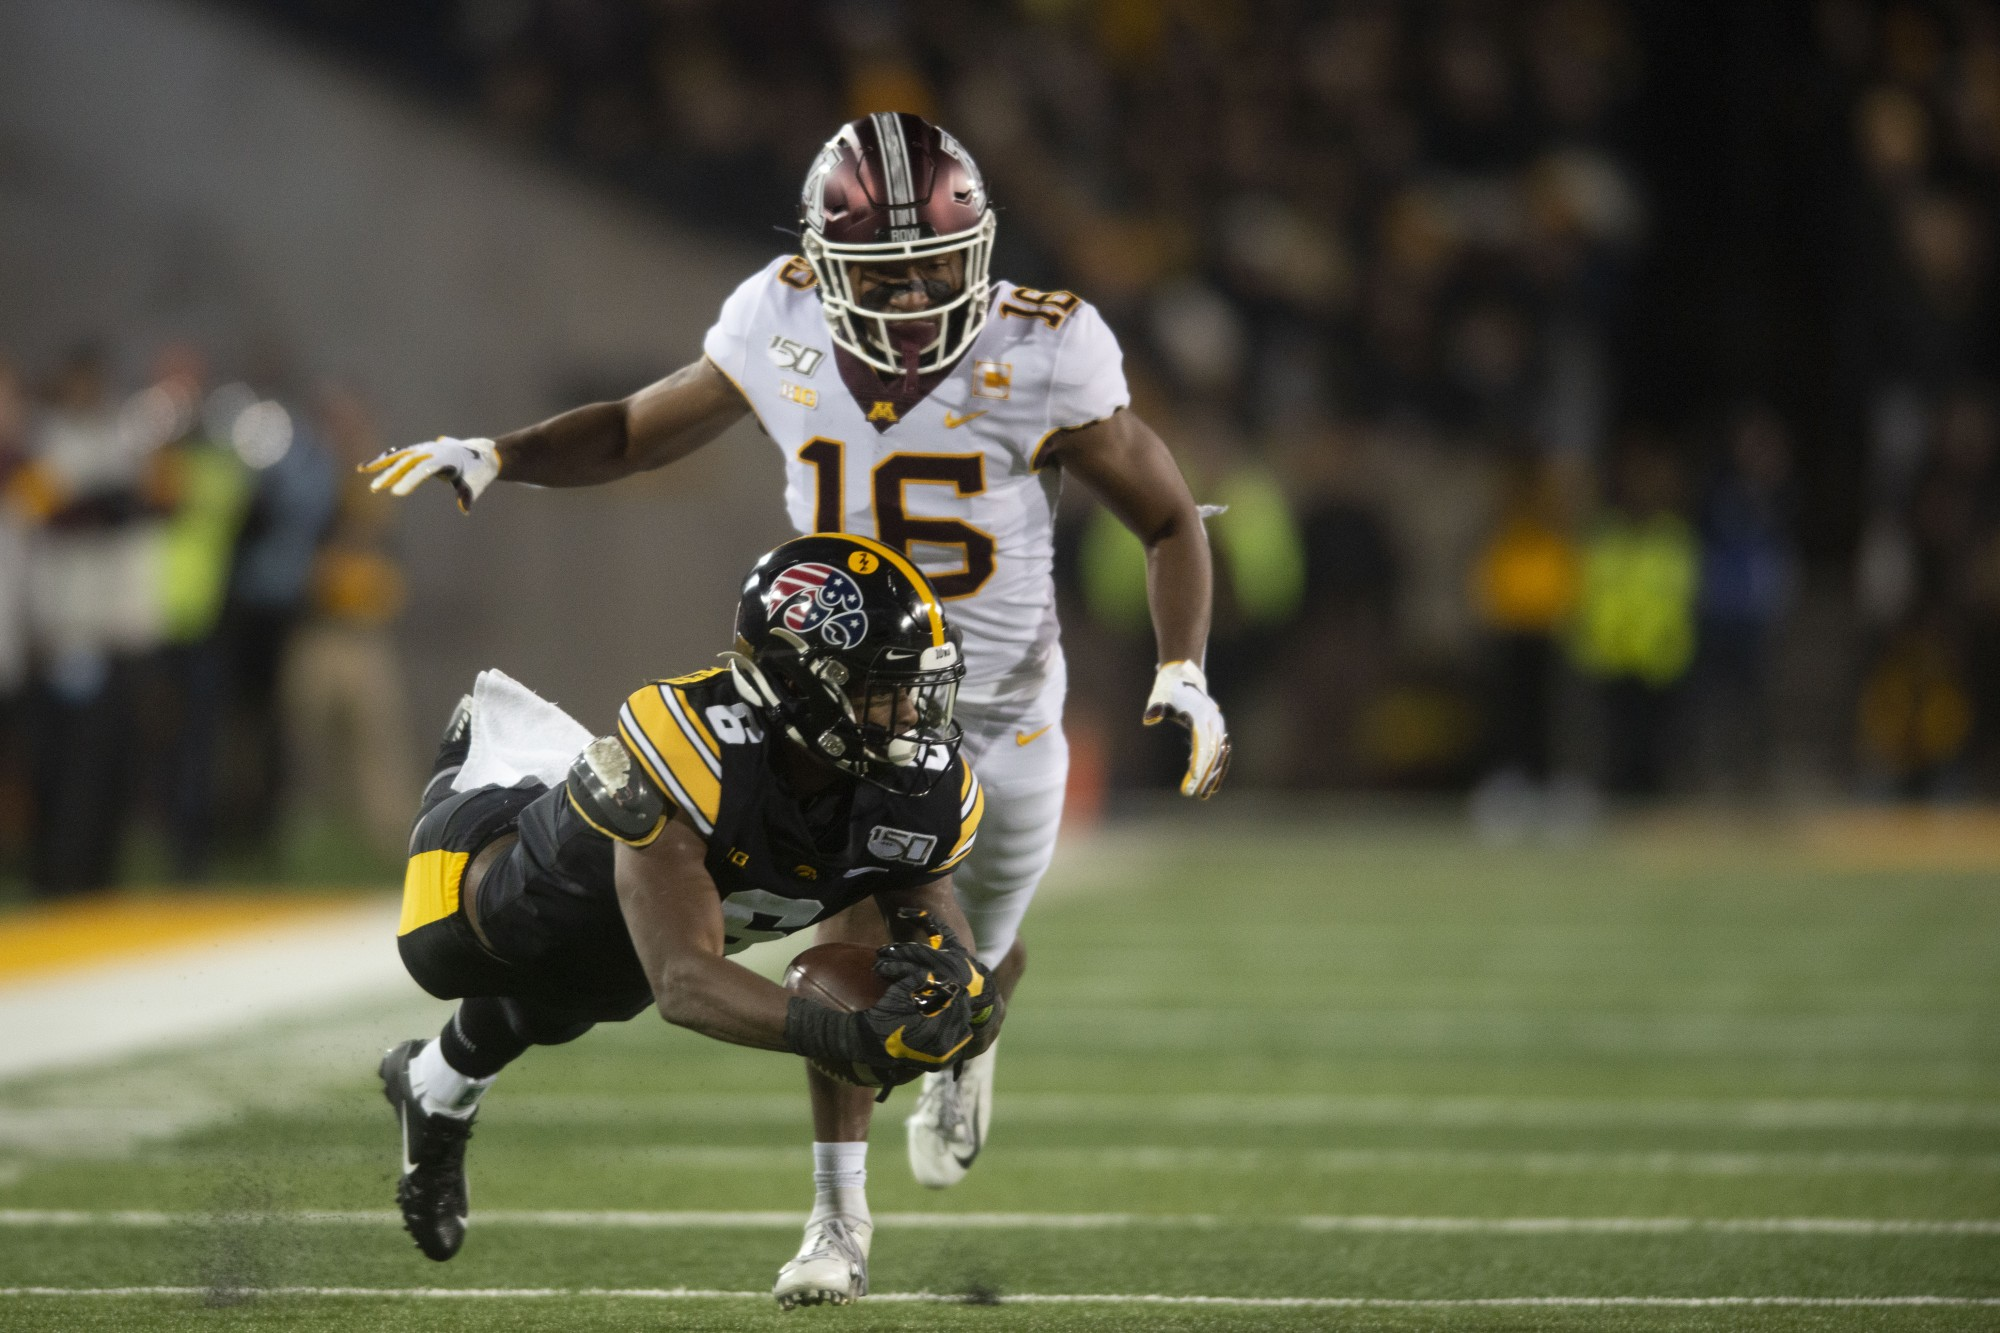 Defensive back Coney Durr chases after a receiver at Kinnick Stadium on Saturday Nov. 16. Iowa defeated the Gophers 23-19 ending their winning streak and bringing their record to 9-1.